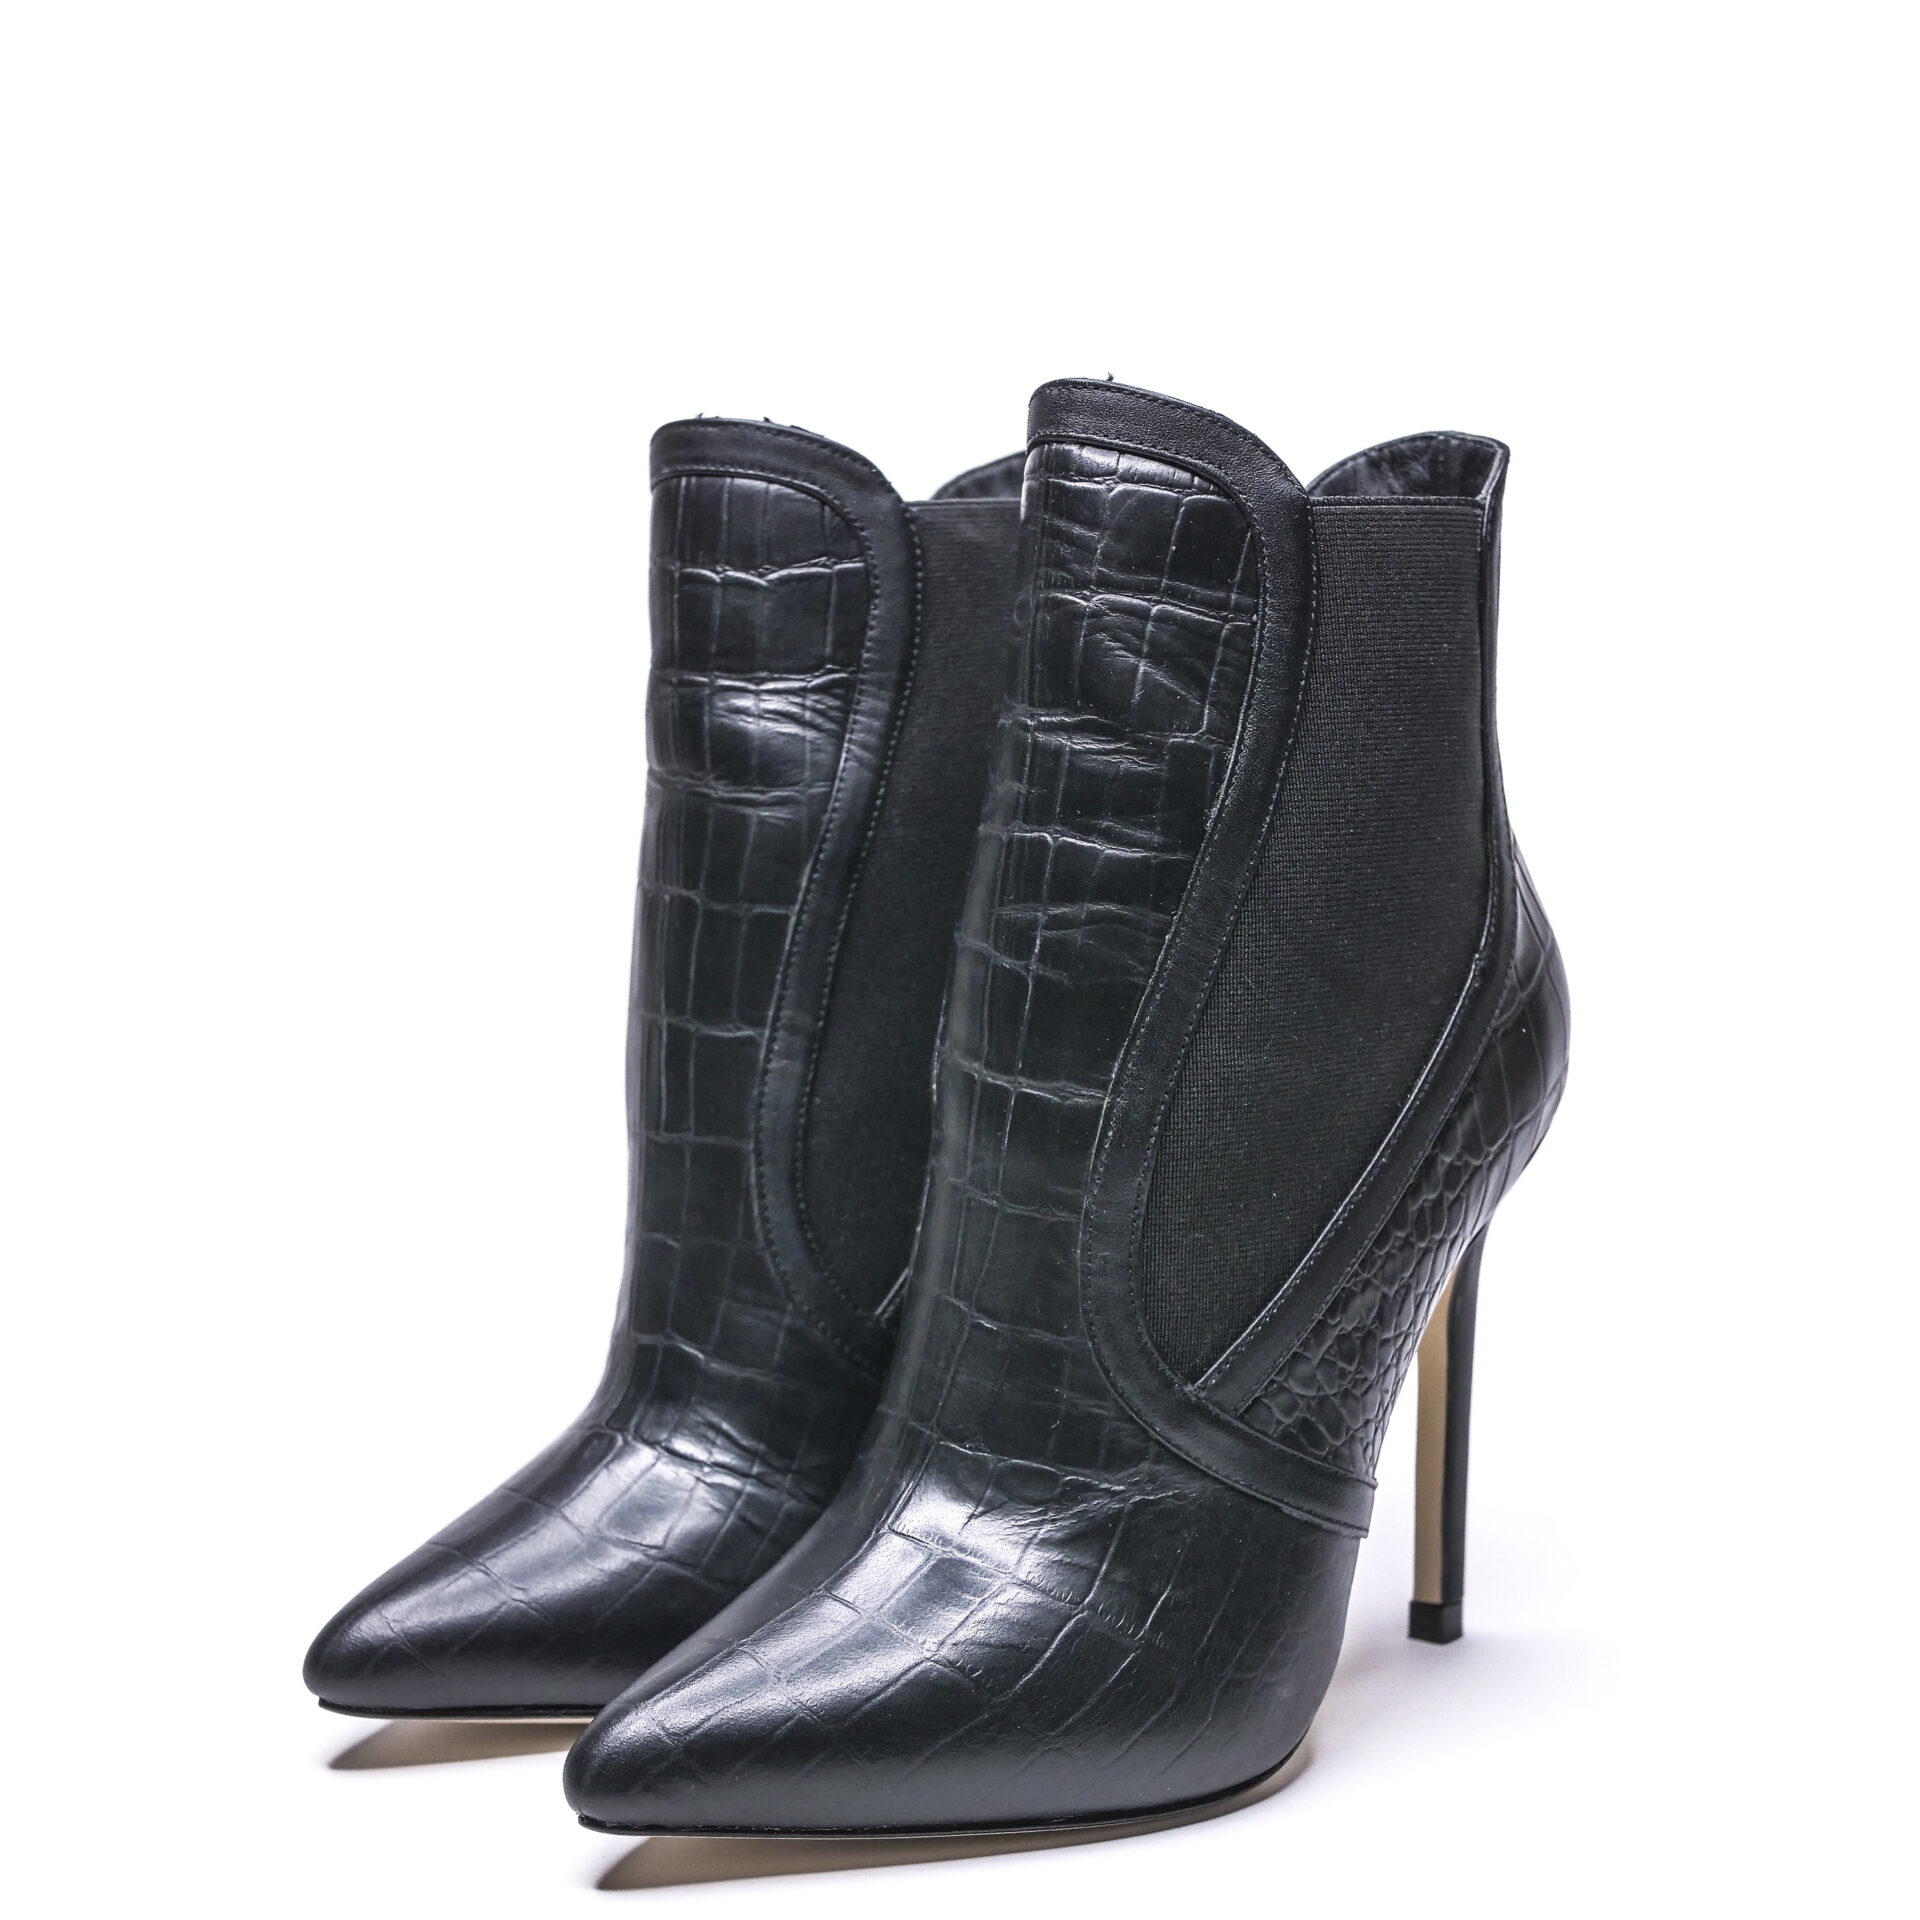 pointed-toe black boots